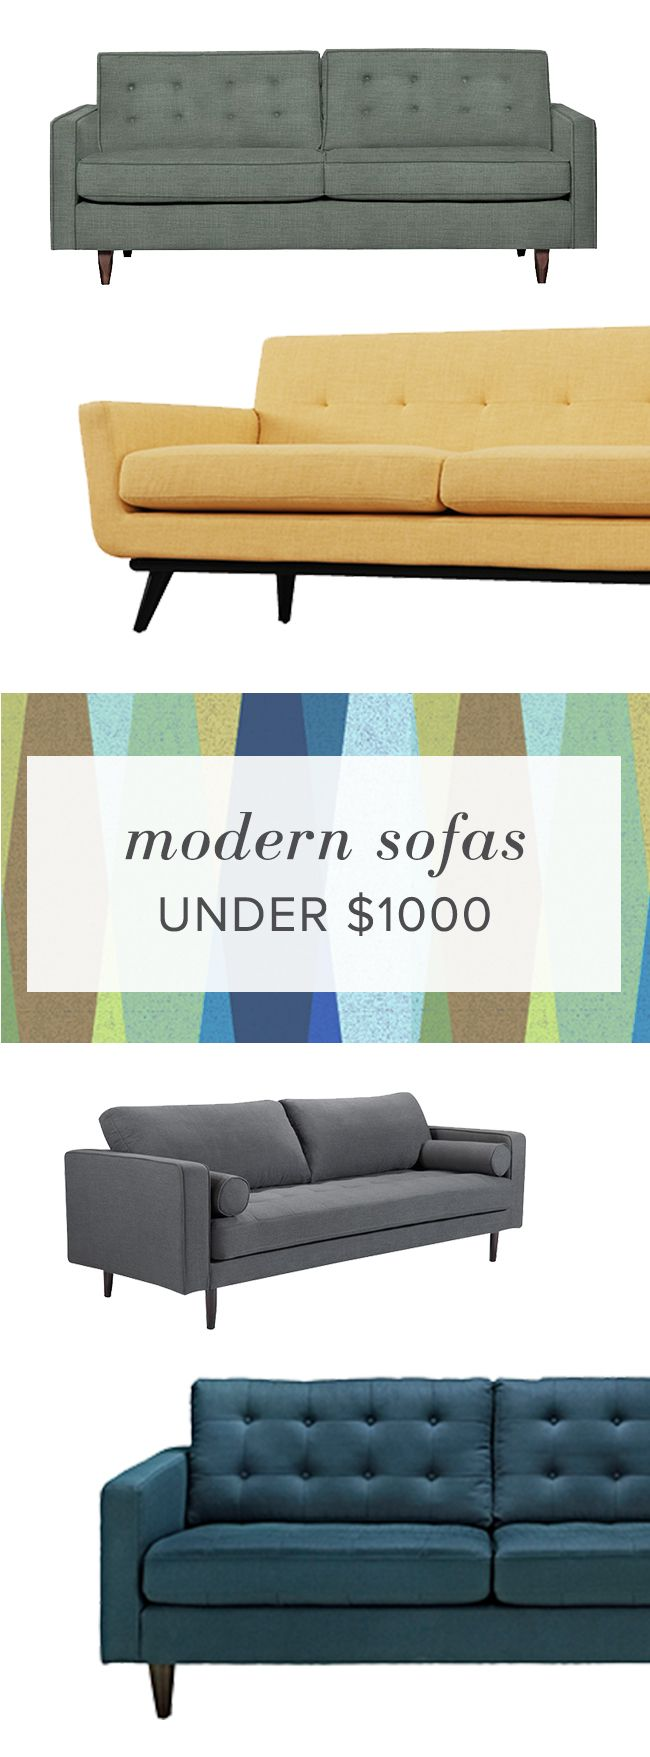 You don't have to break the bank to get the modern look. Shop modern contemporary sofas and other living room finds at AllModern. AllModern offers a variety of styles including mid-century, scandinavian, posh, and industrial. Plus, there's FREE SHIPPING on overs over $49.